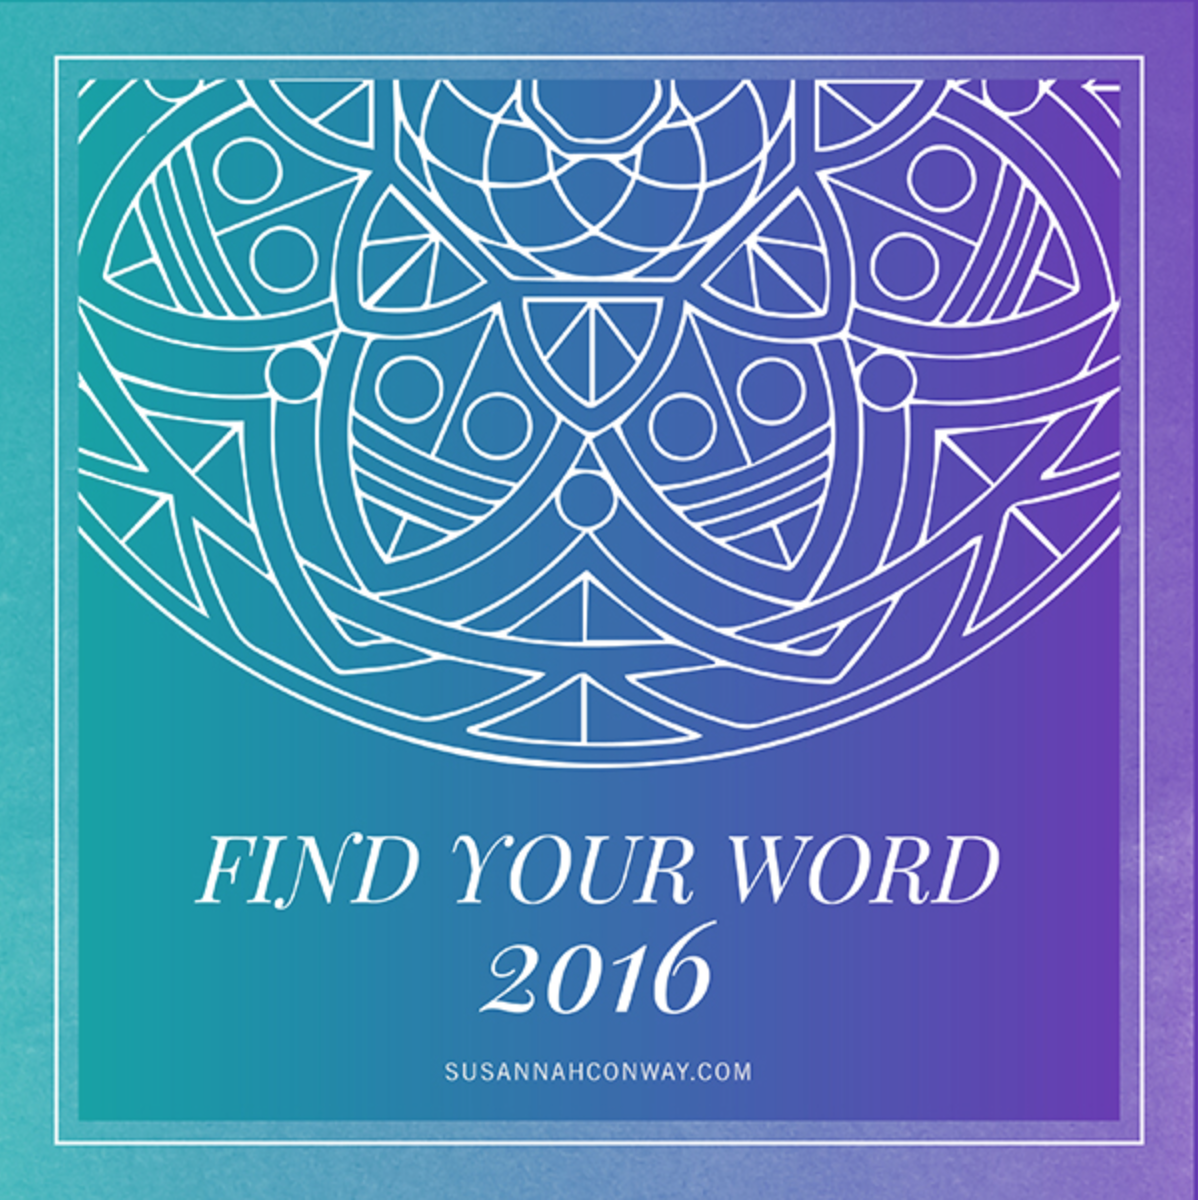 Find Your Word 2016 email course with Susannah Conway